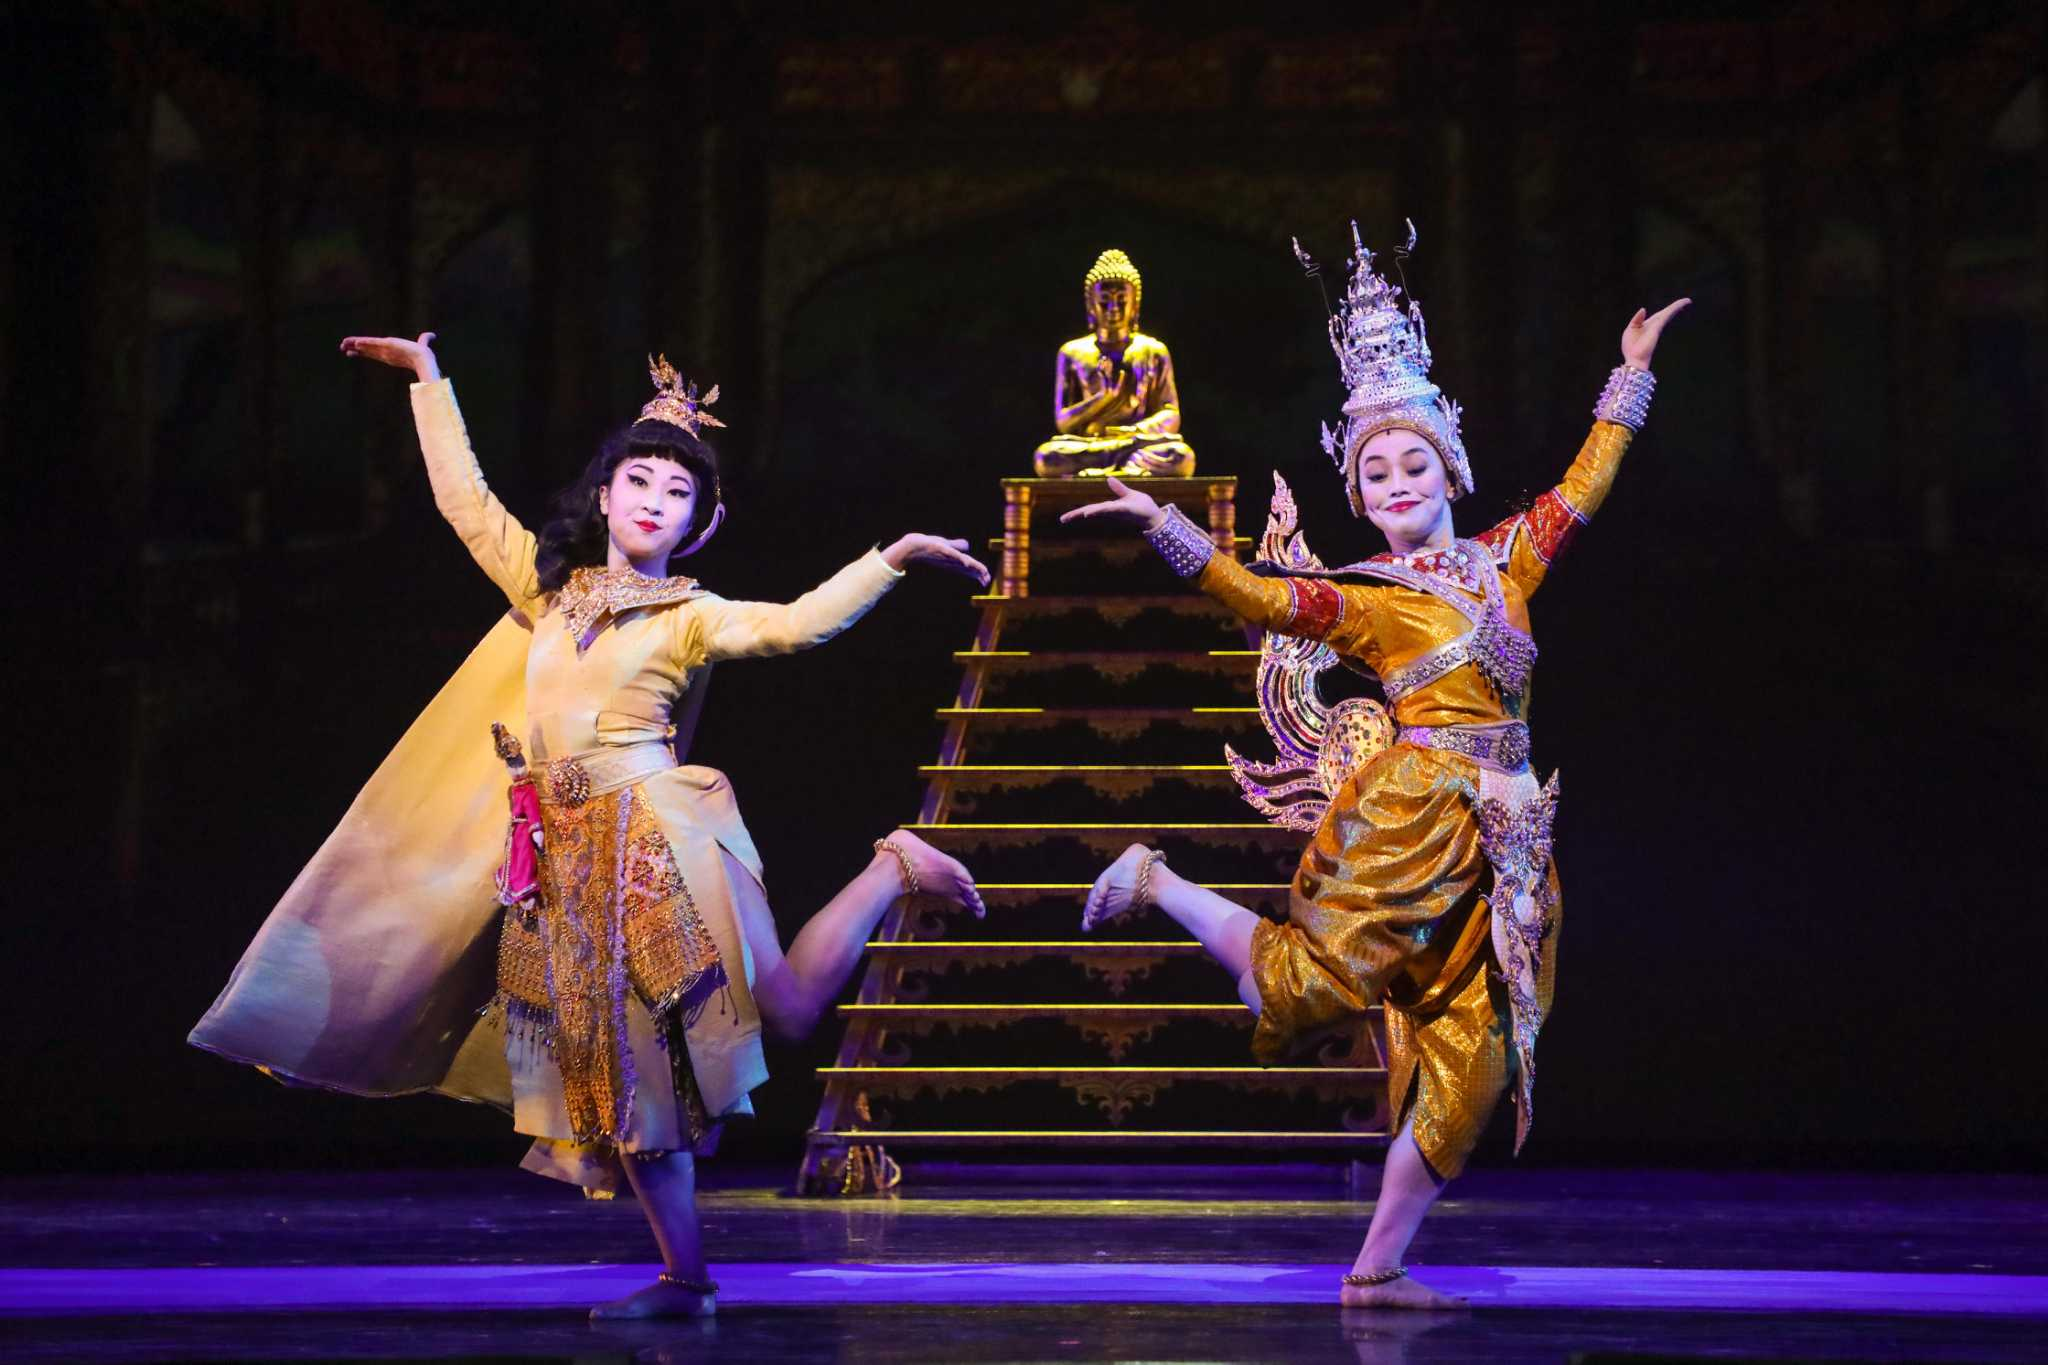 Monday letters: Great theater, great performances, just enjoy it!